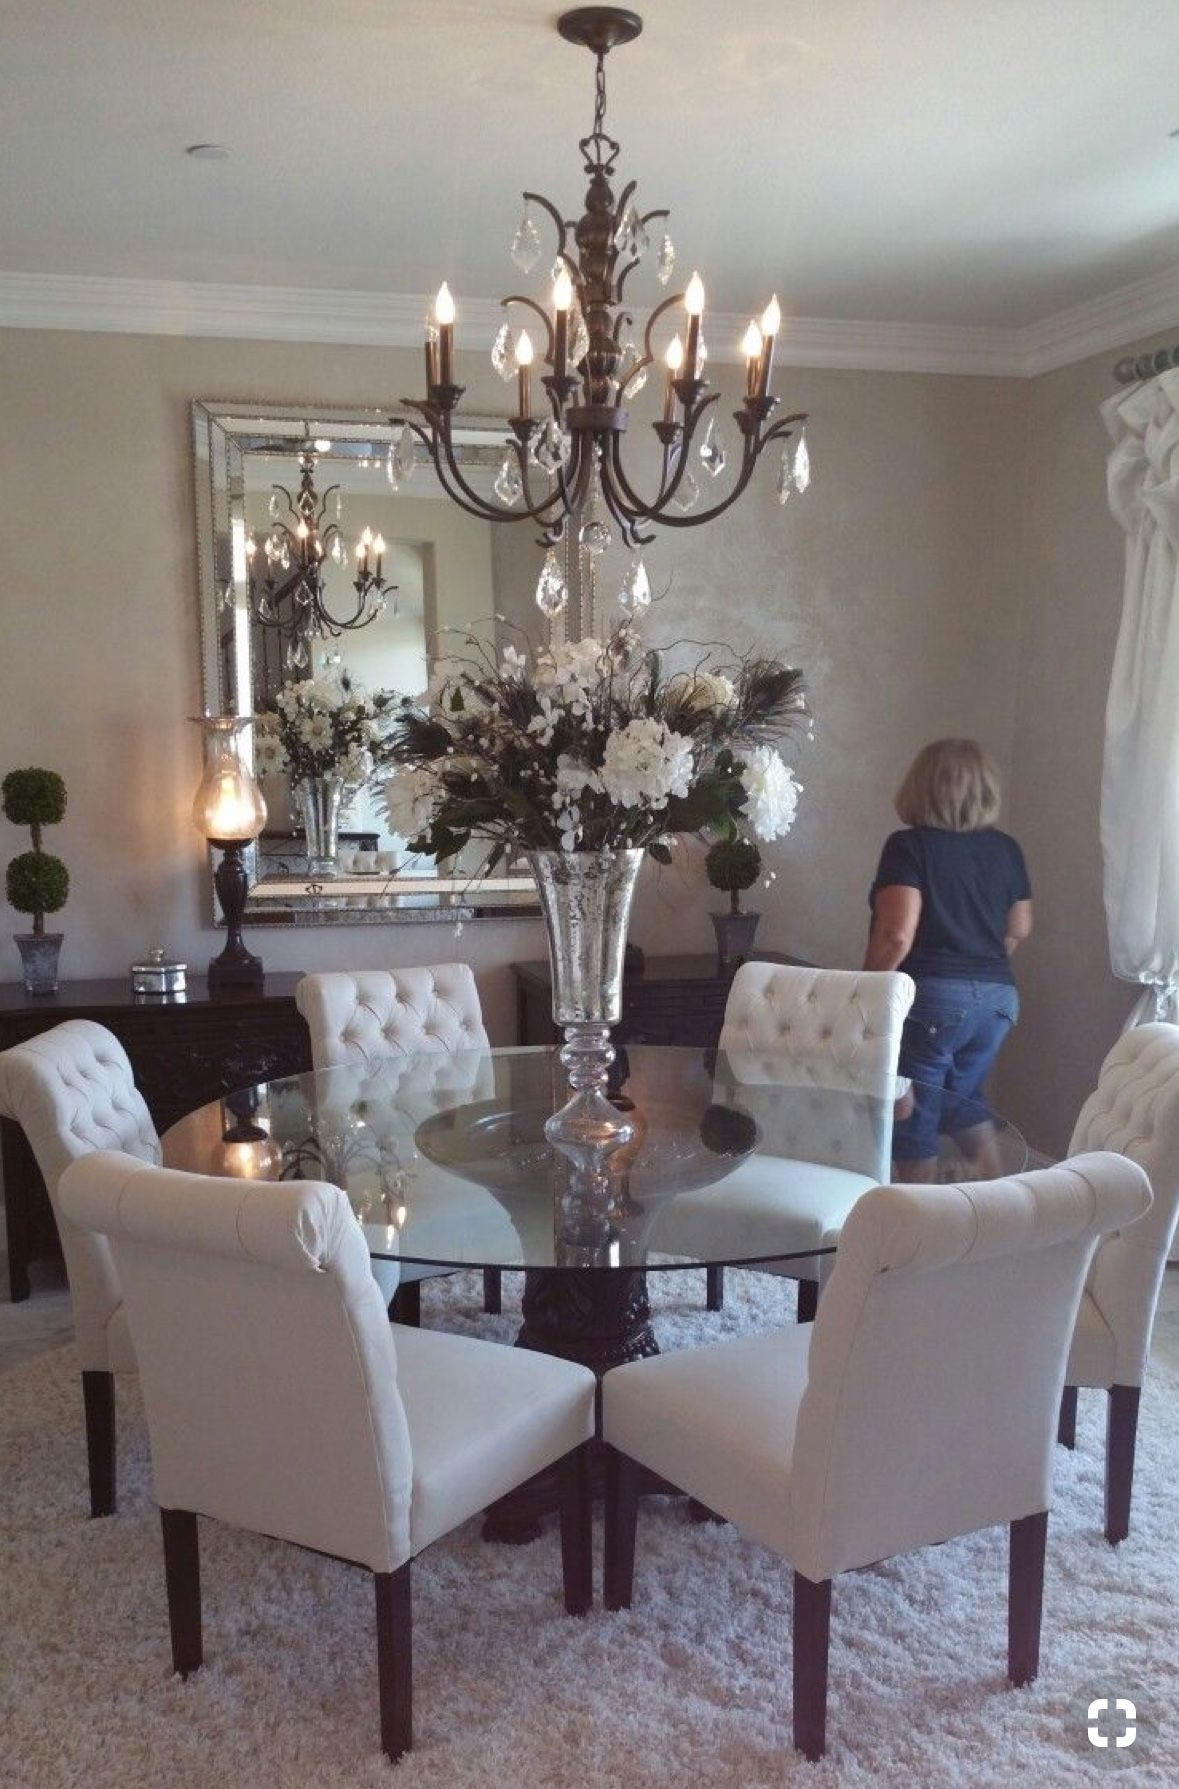 New Dining Room Decor Ideas Elegant Pinterest Tkmaignan For More Inspiration D Farmhouse Rooms Table Round